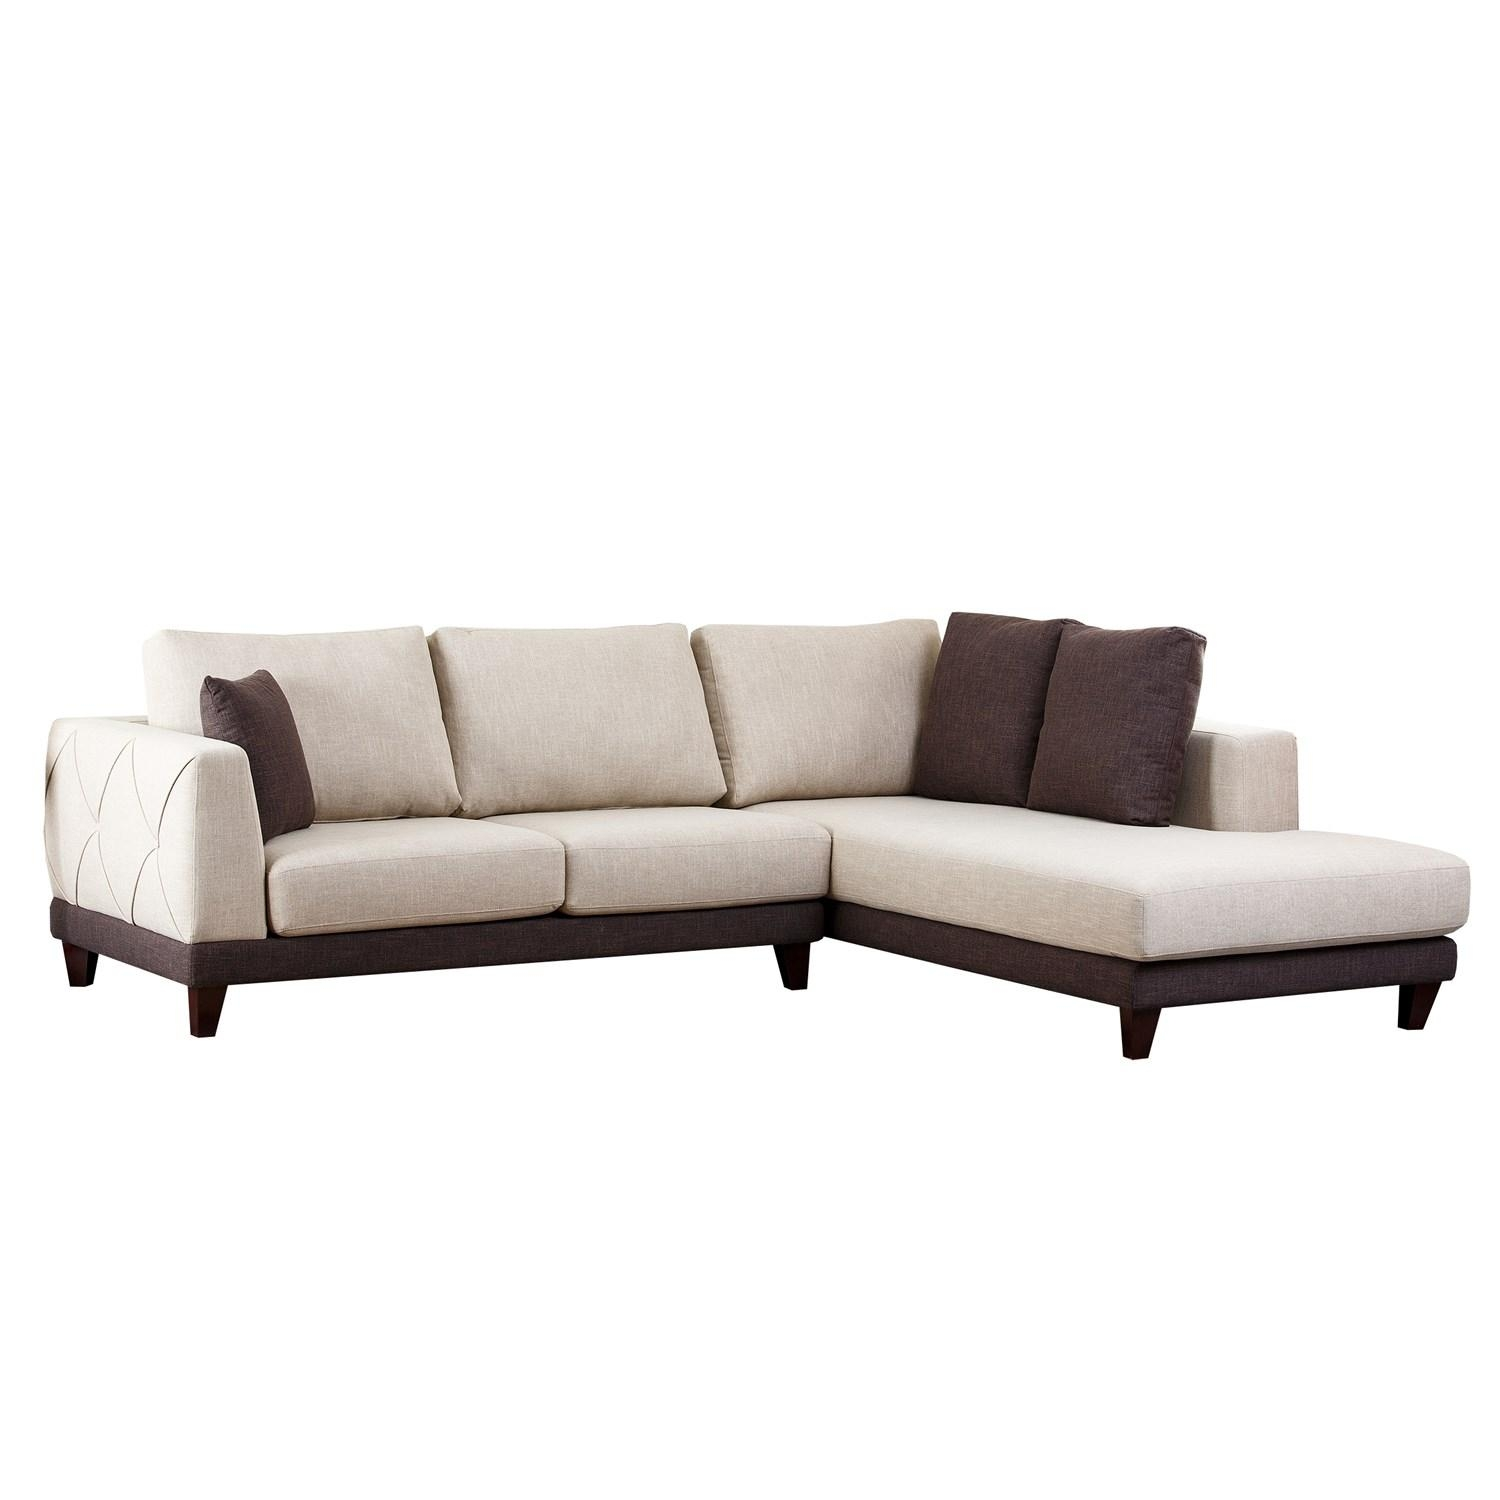 Abbyson Sectional Sofa 19 With Abbyson Sectional Sofa Pertaining To Abbyson Sectional Sofa (View 10 of 15)